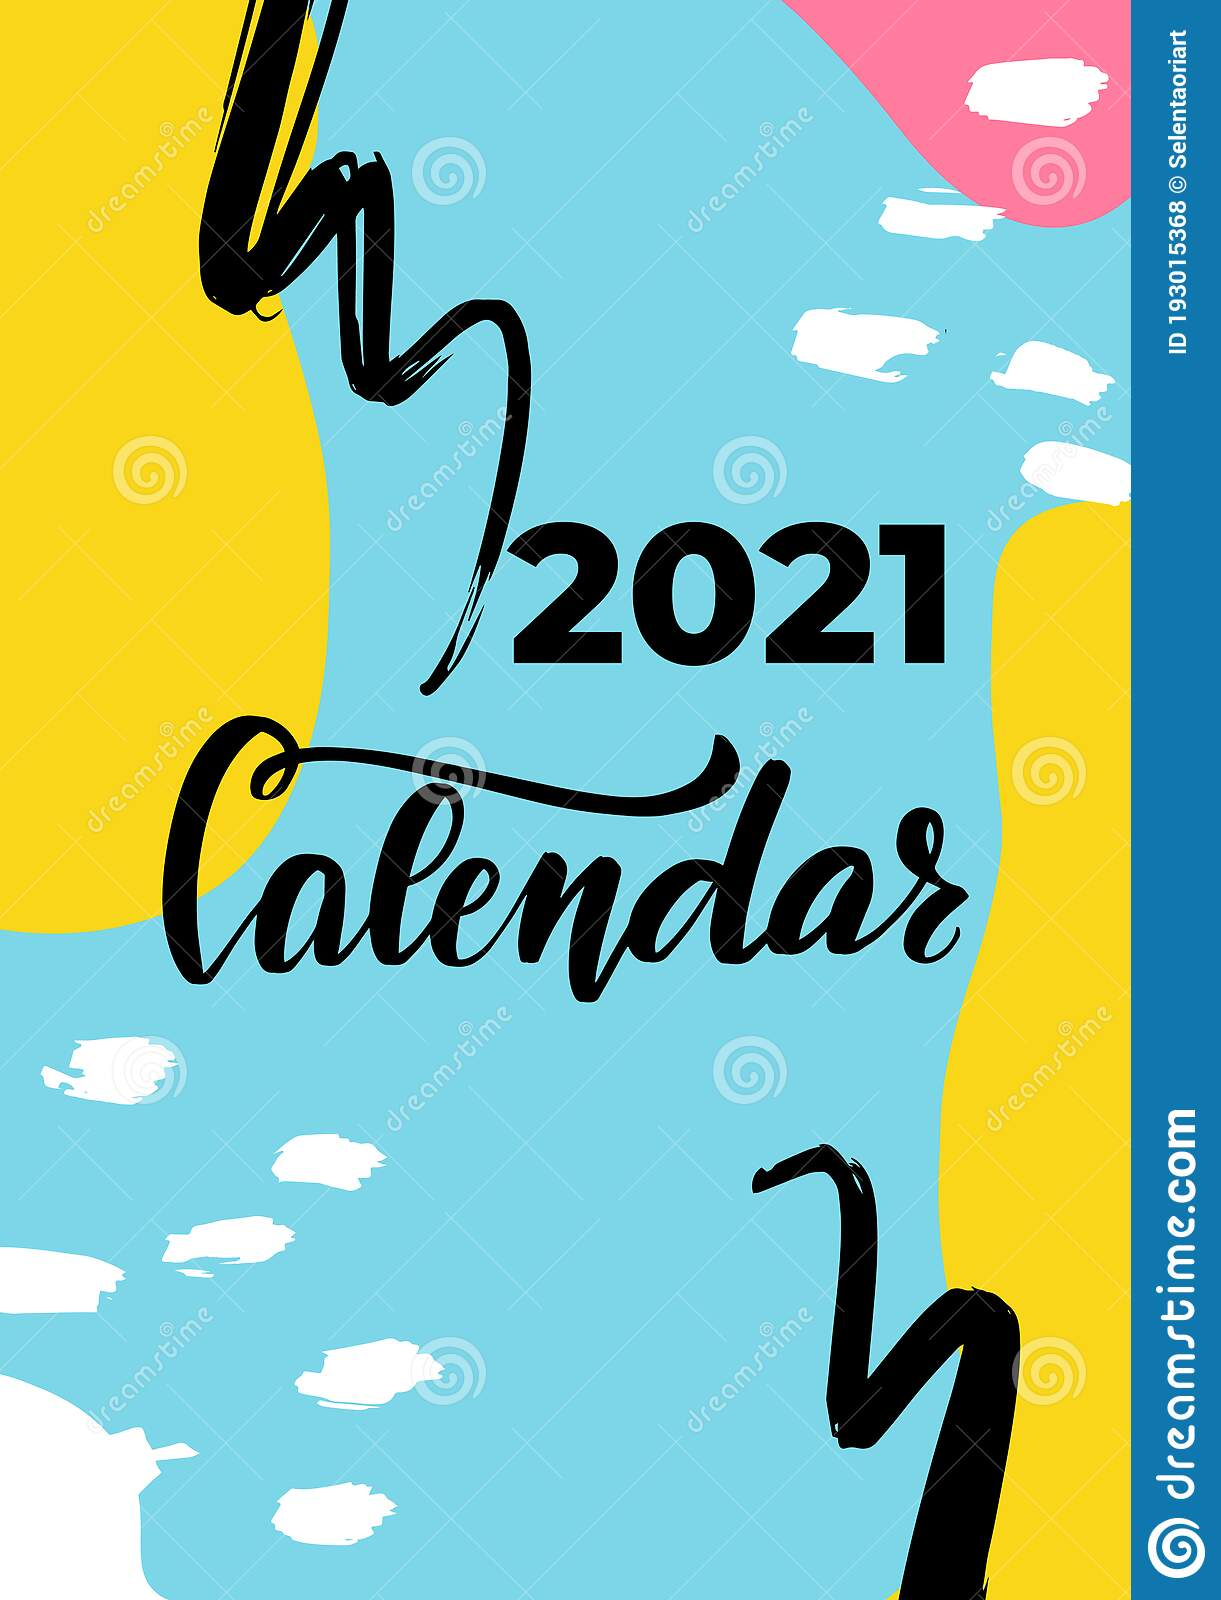 2021 Calendar Cover 2021 Calendar Cover. Vector Abstract Graphic Design. Monthly